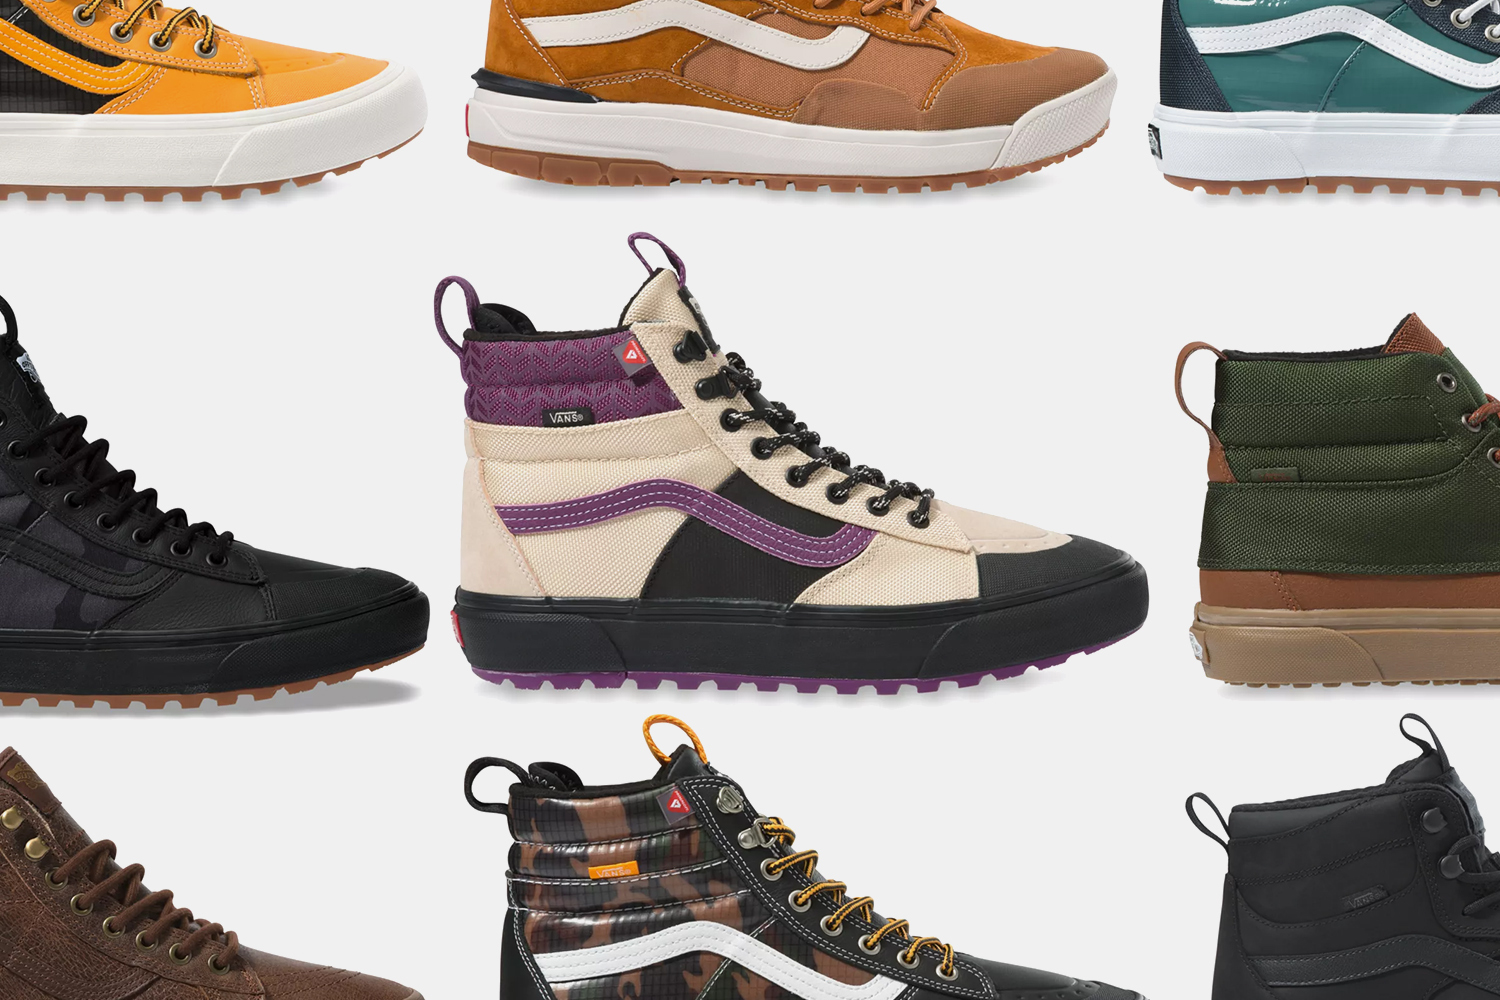 Vans Now Makes Some of the Best Sneaker Boots Around - InsideHook